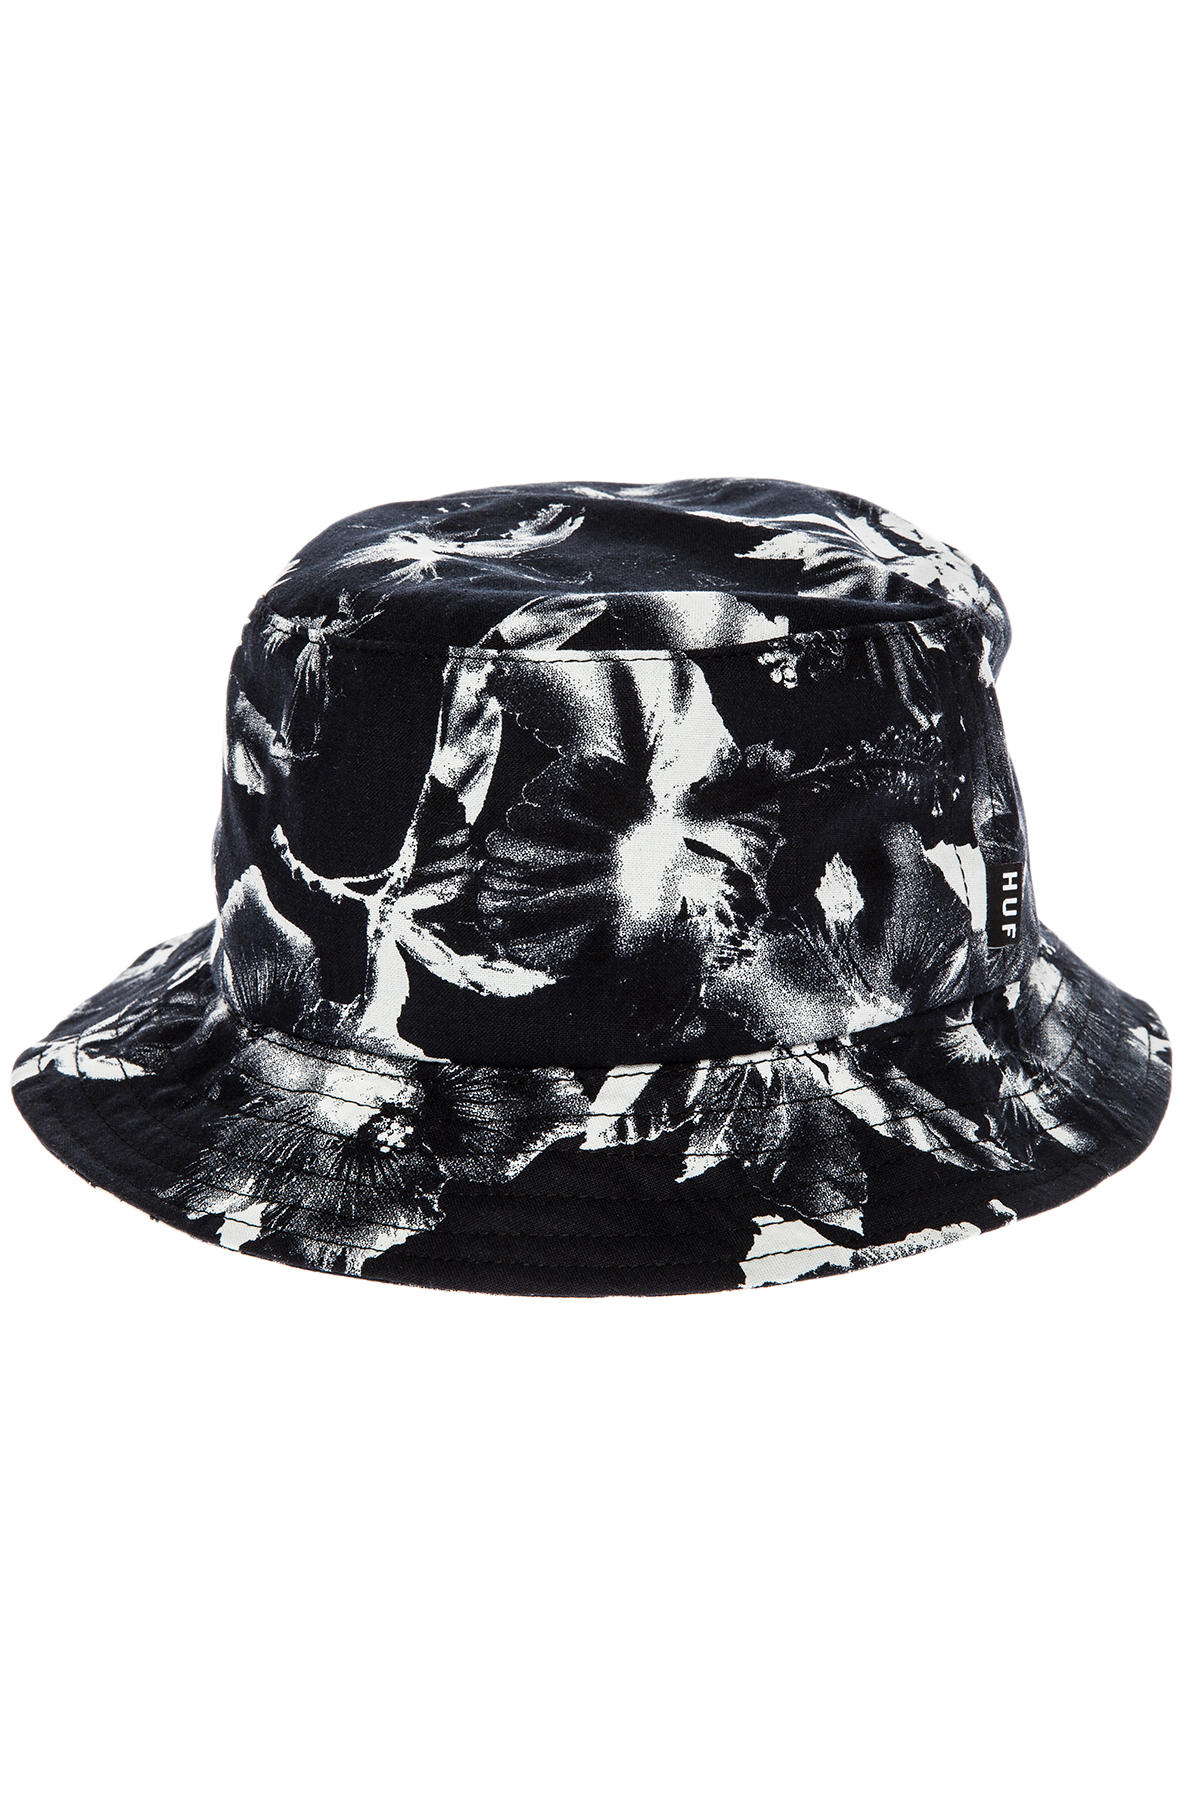 c1c05a39e73 Lyst - Huf The Floral Bucket Hat in Black for Men